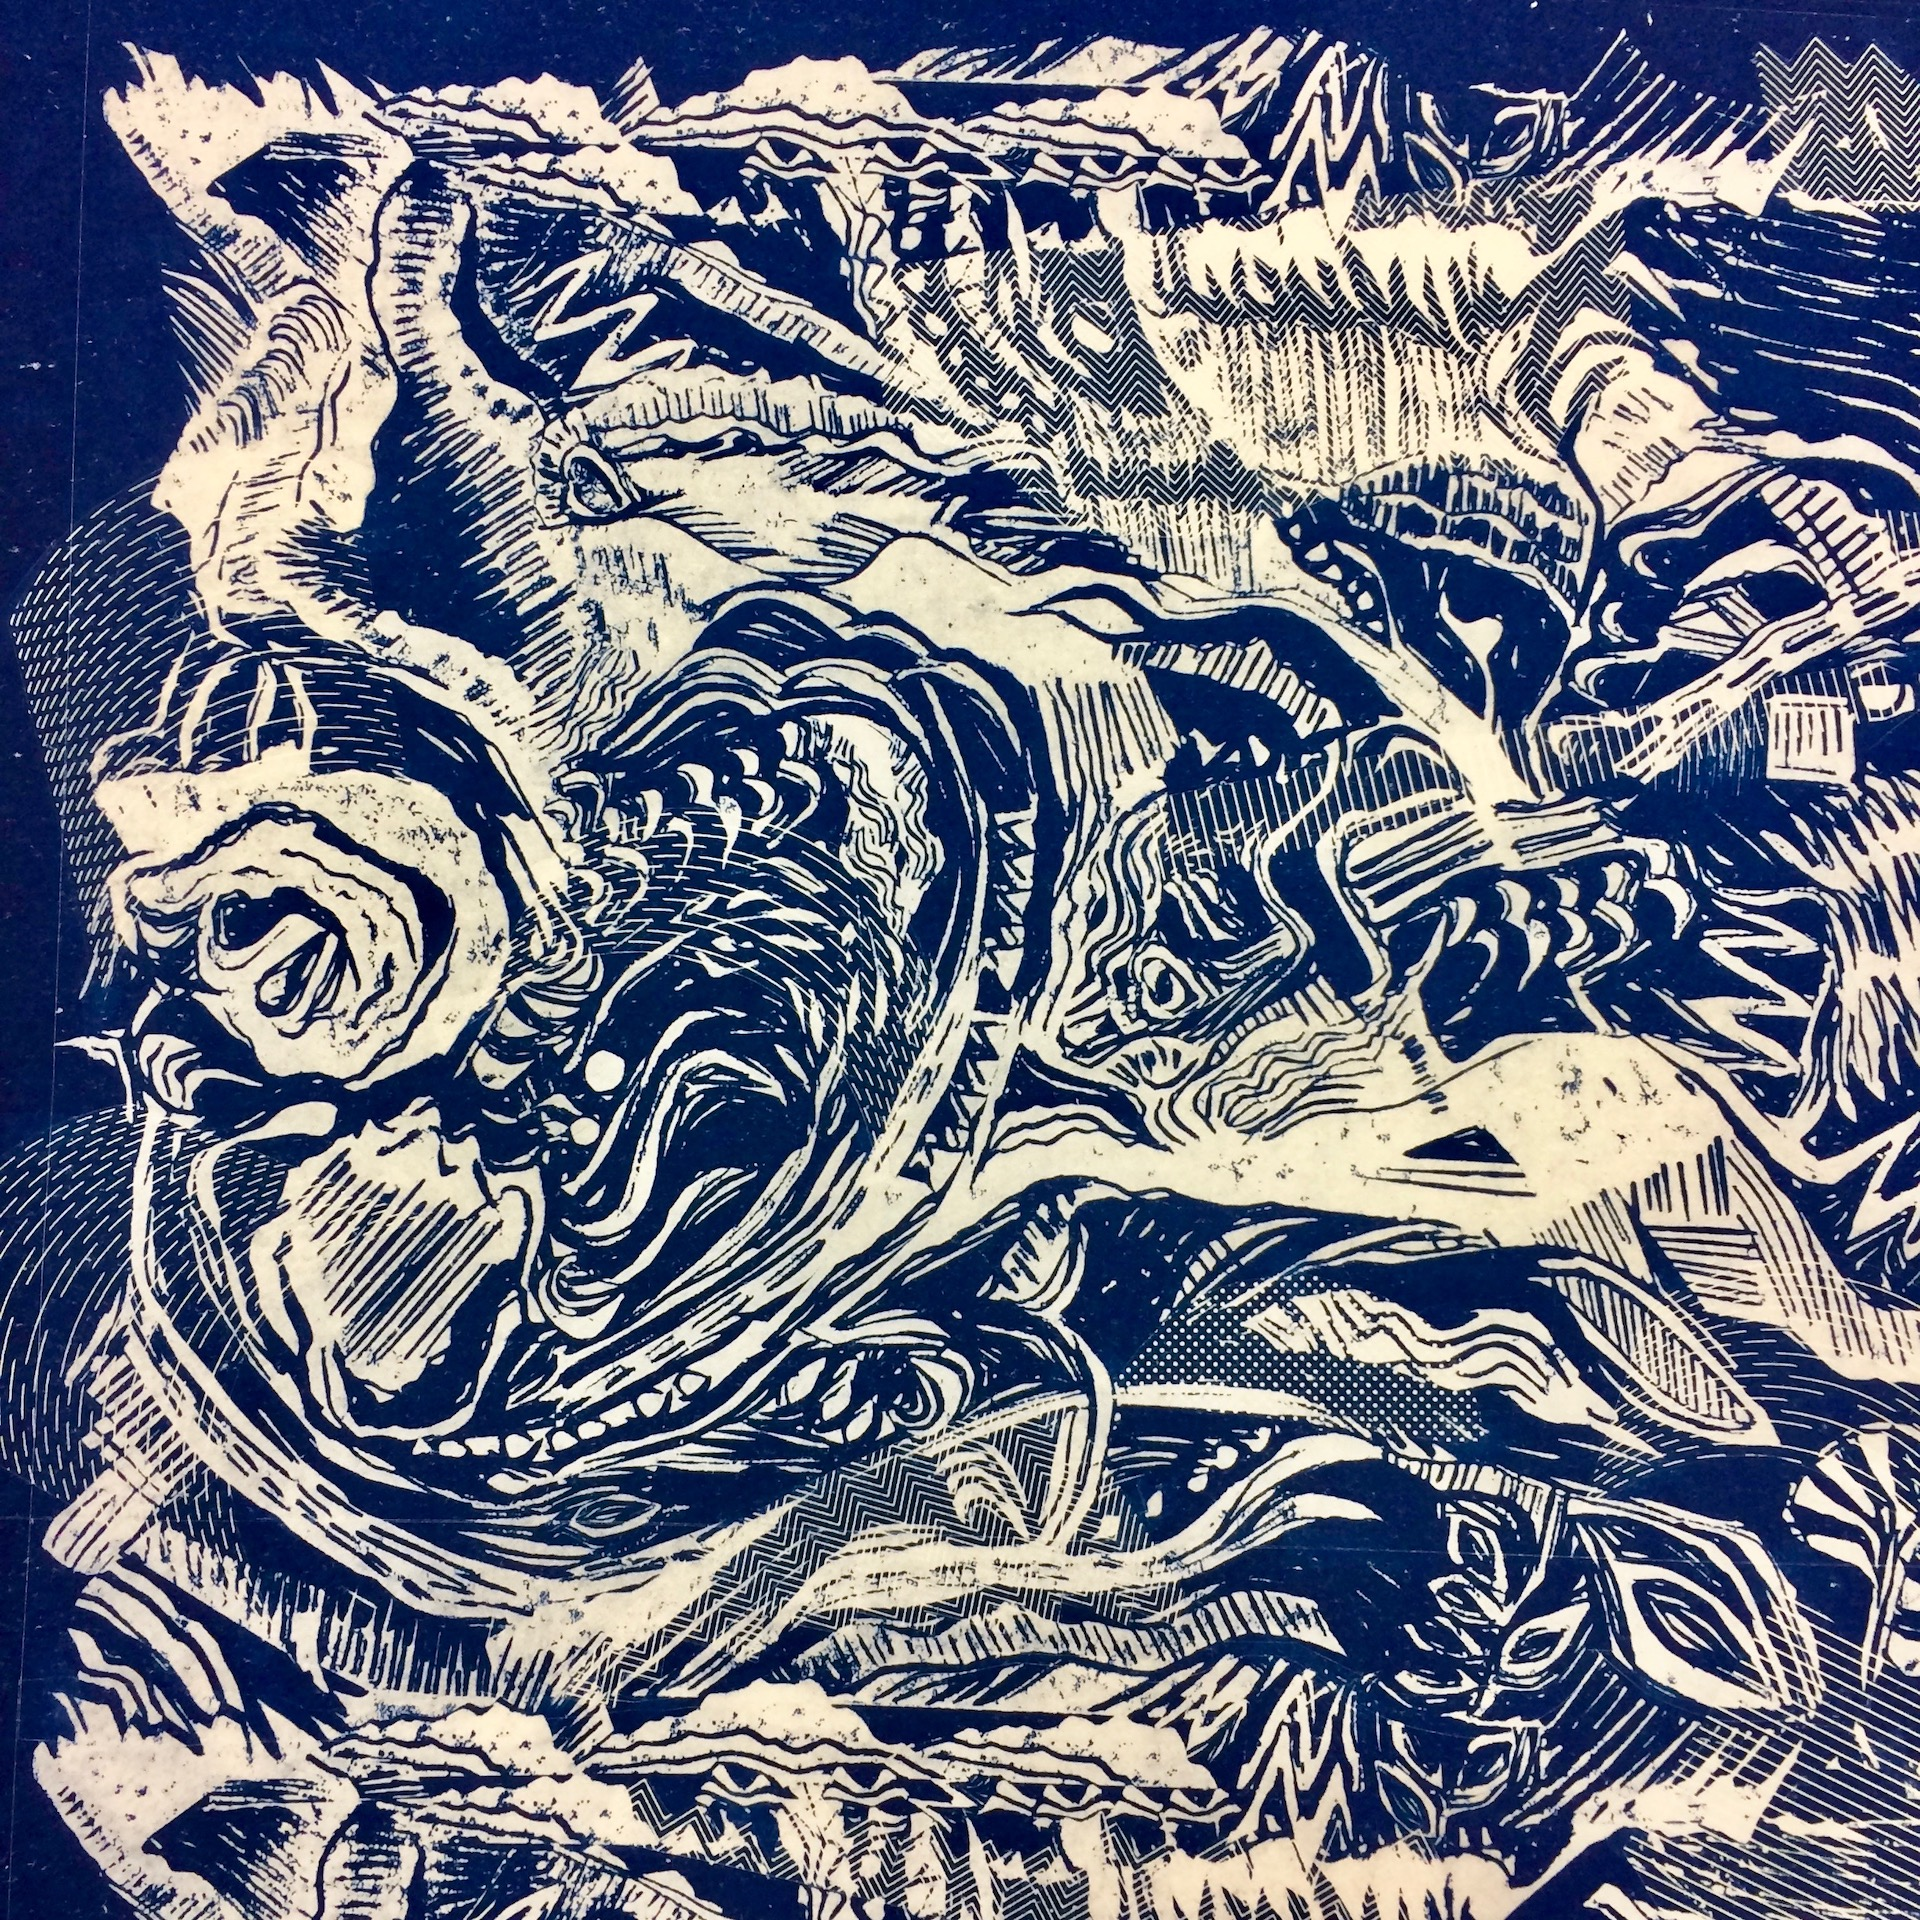 Cyanotype design and print by Lara Mantell